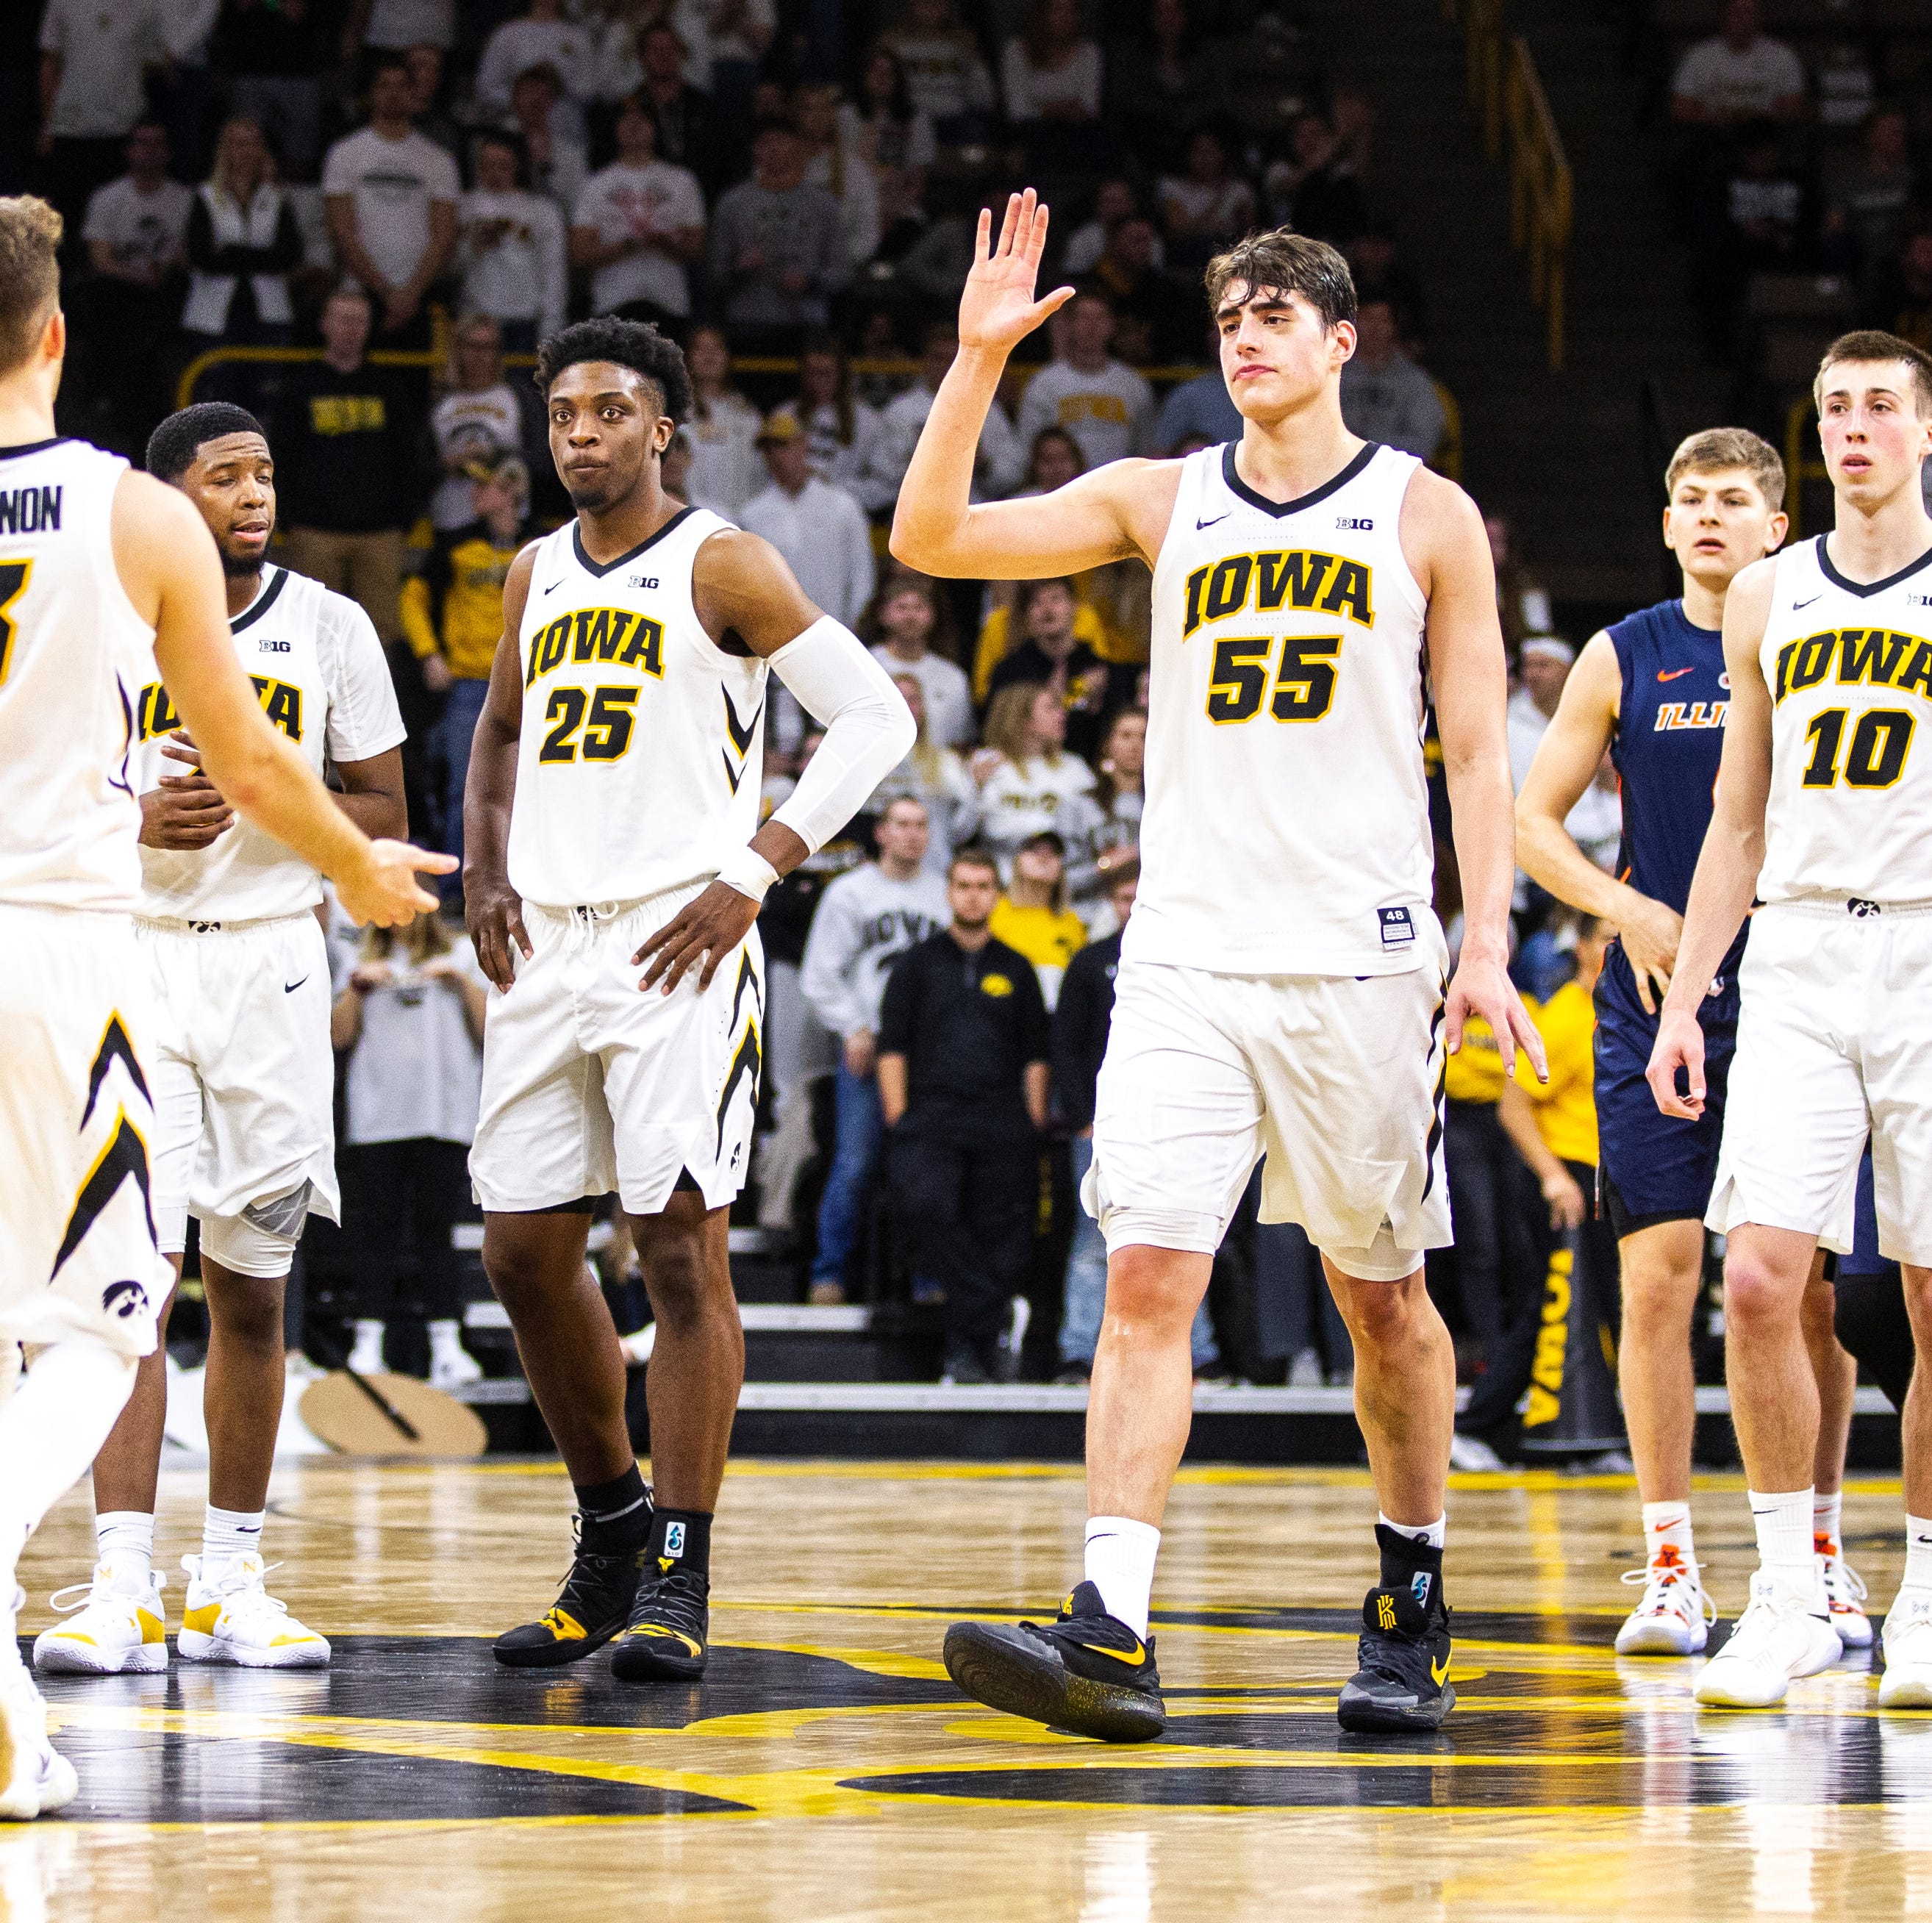 Leistikow: Being good not good enough for Hawkeyes after 5th straight win. 'We want to be great.'